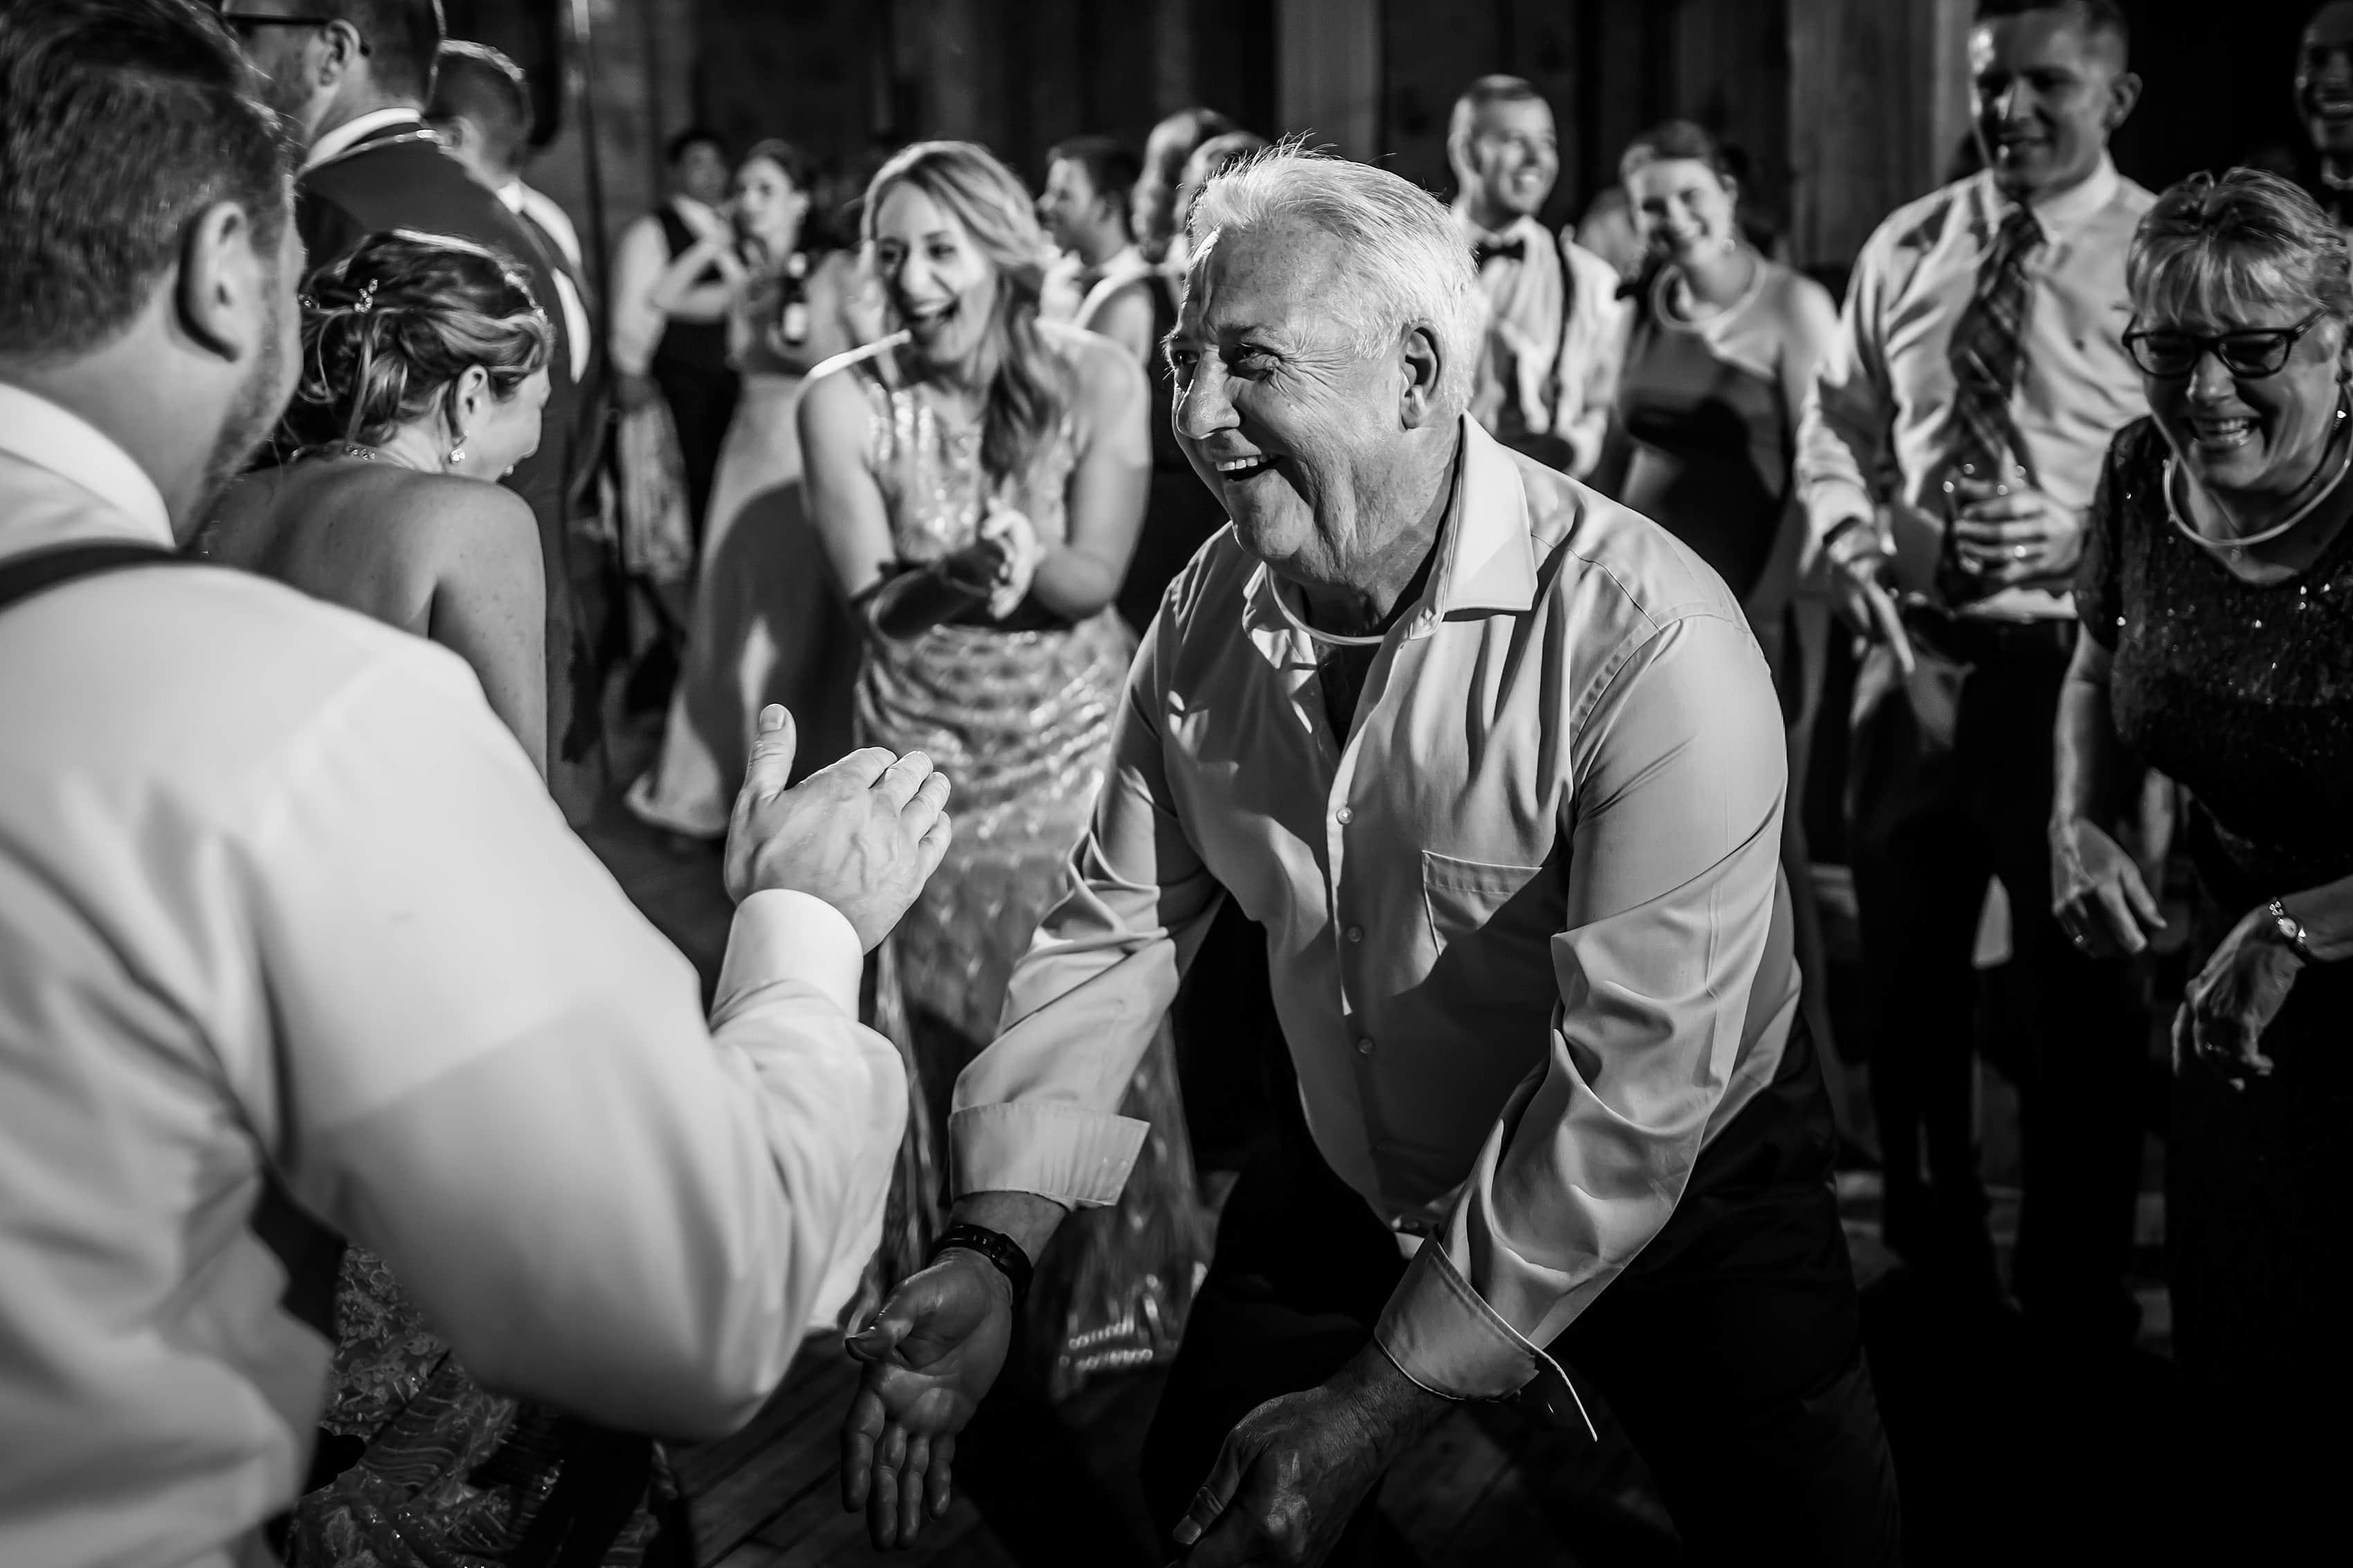 wedding guests dance during wedding reception at Bridgeport Art Center Sculpture Garden in Chicago